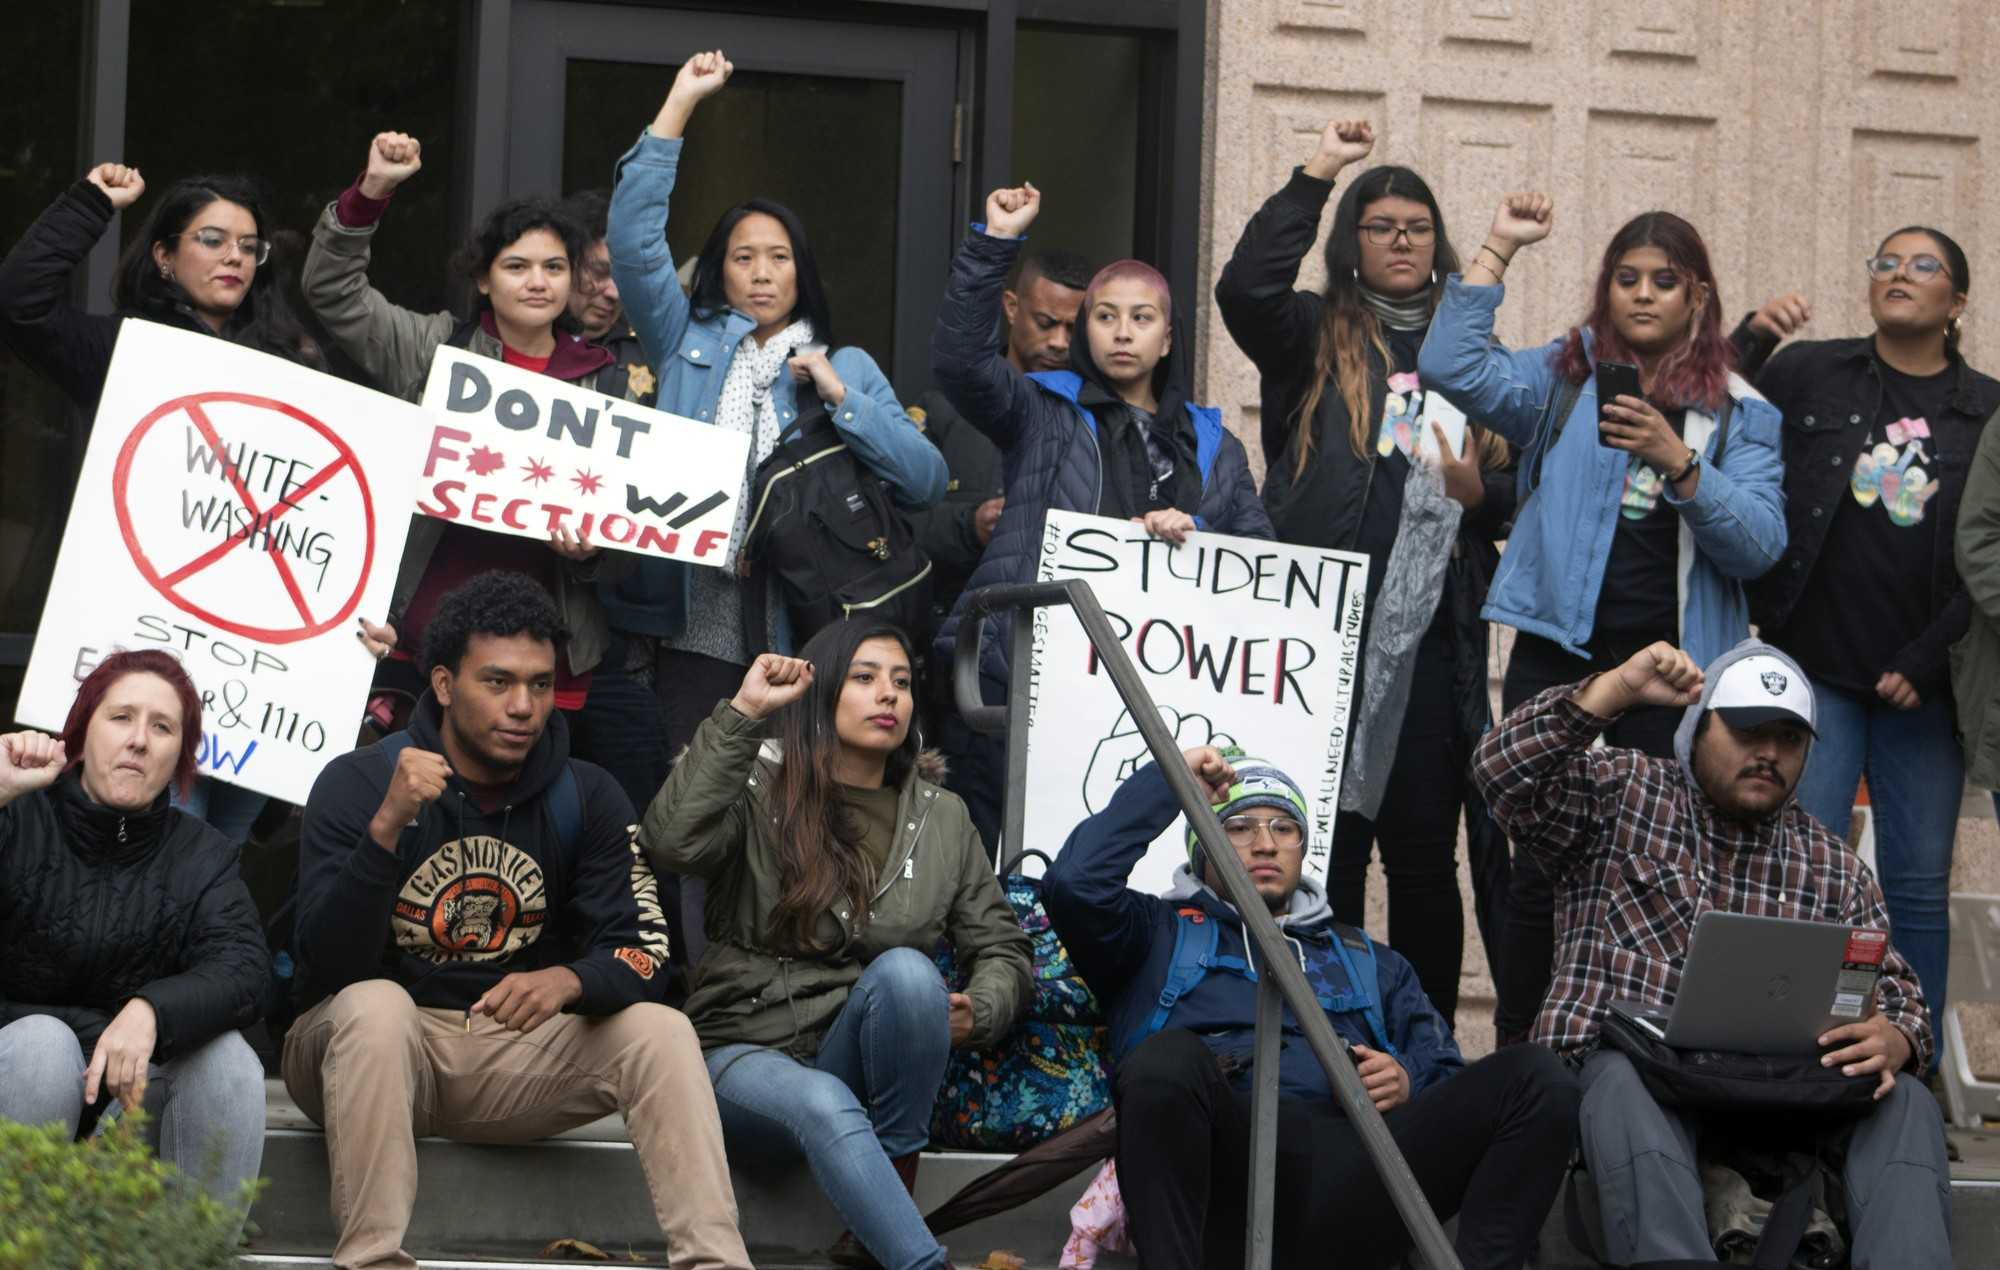 CSUN protestors sit on the steps in front of the Oviatt library where the senate meeting debating ethnic studies is being held. They raise their fists in unison to show empowerment. Photo credit: Monica Villacorta